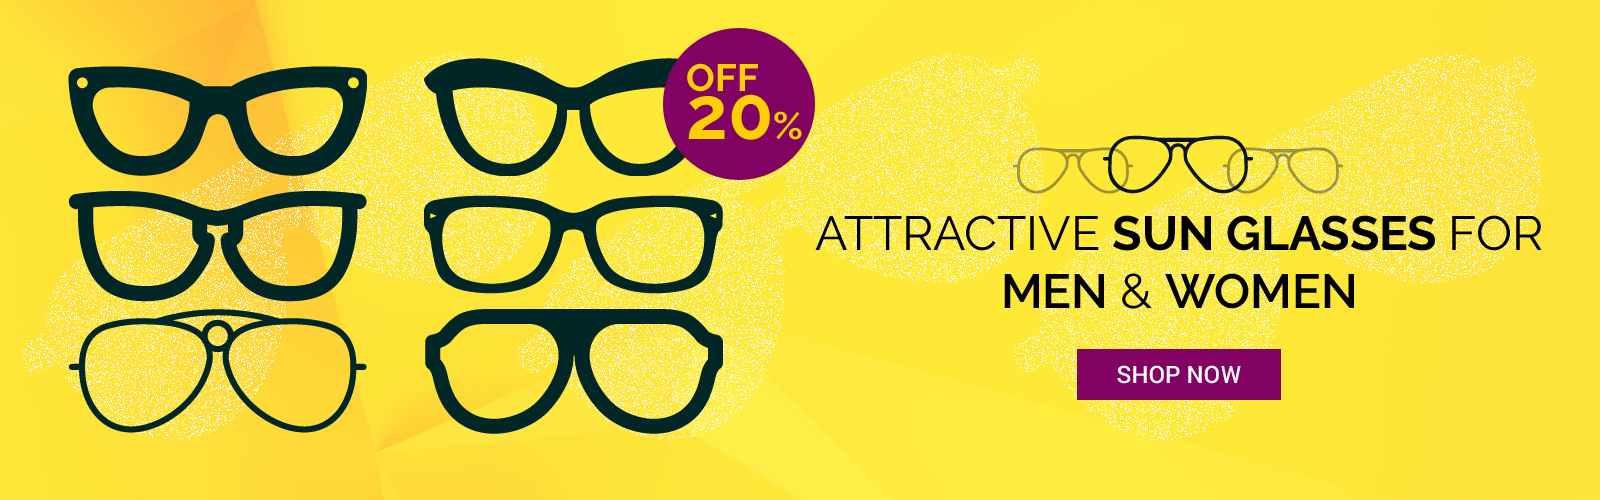 Attractive Sun Glasses for Men & Women